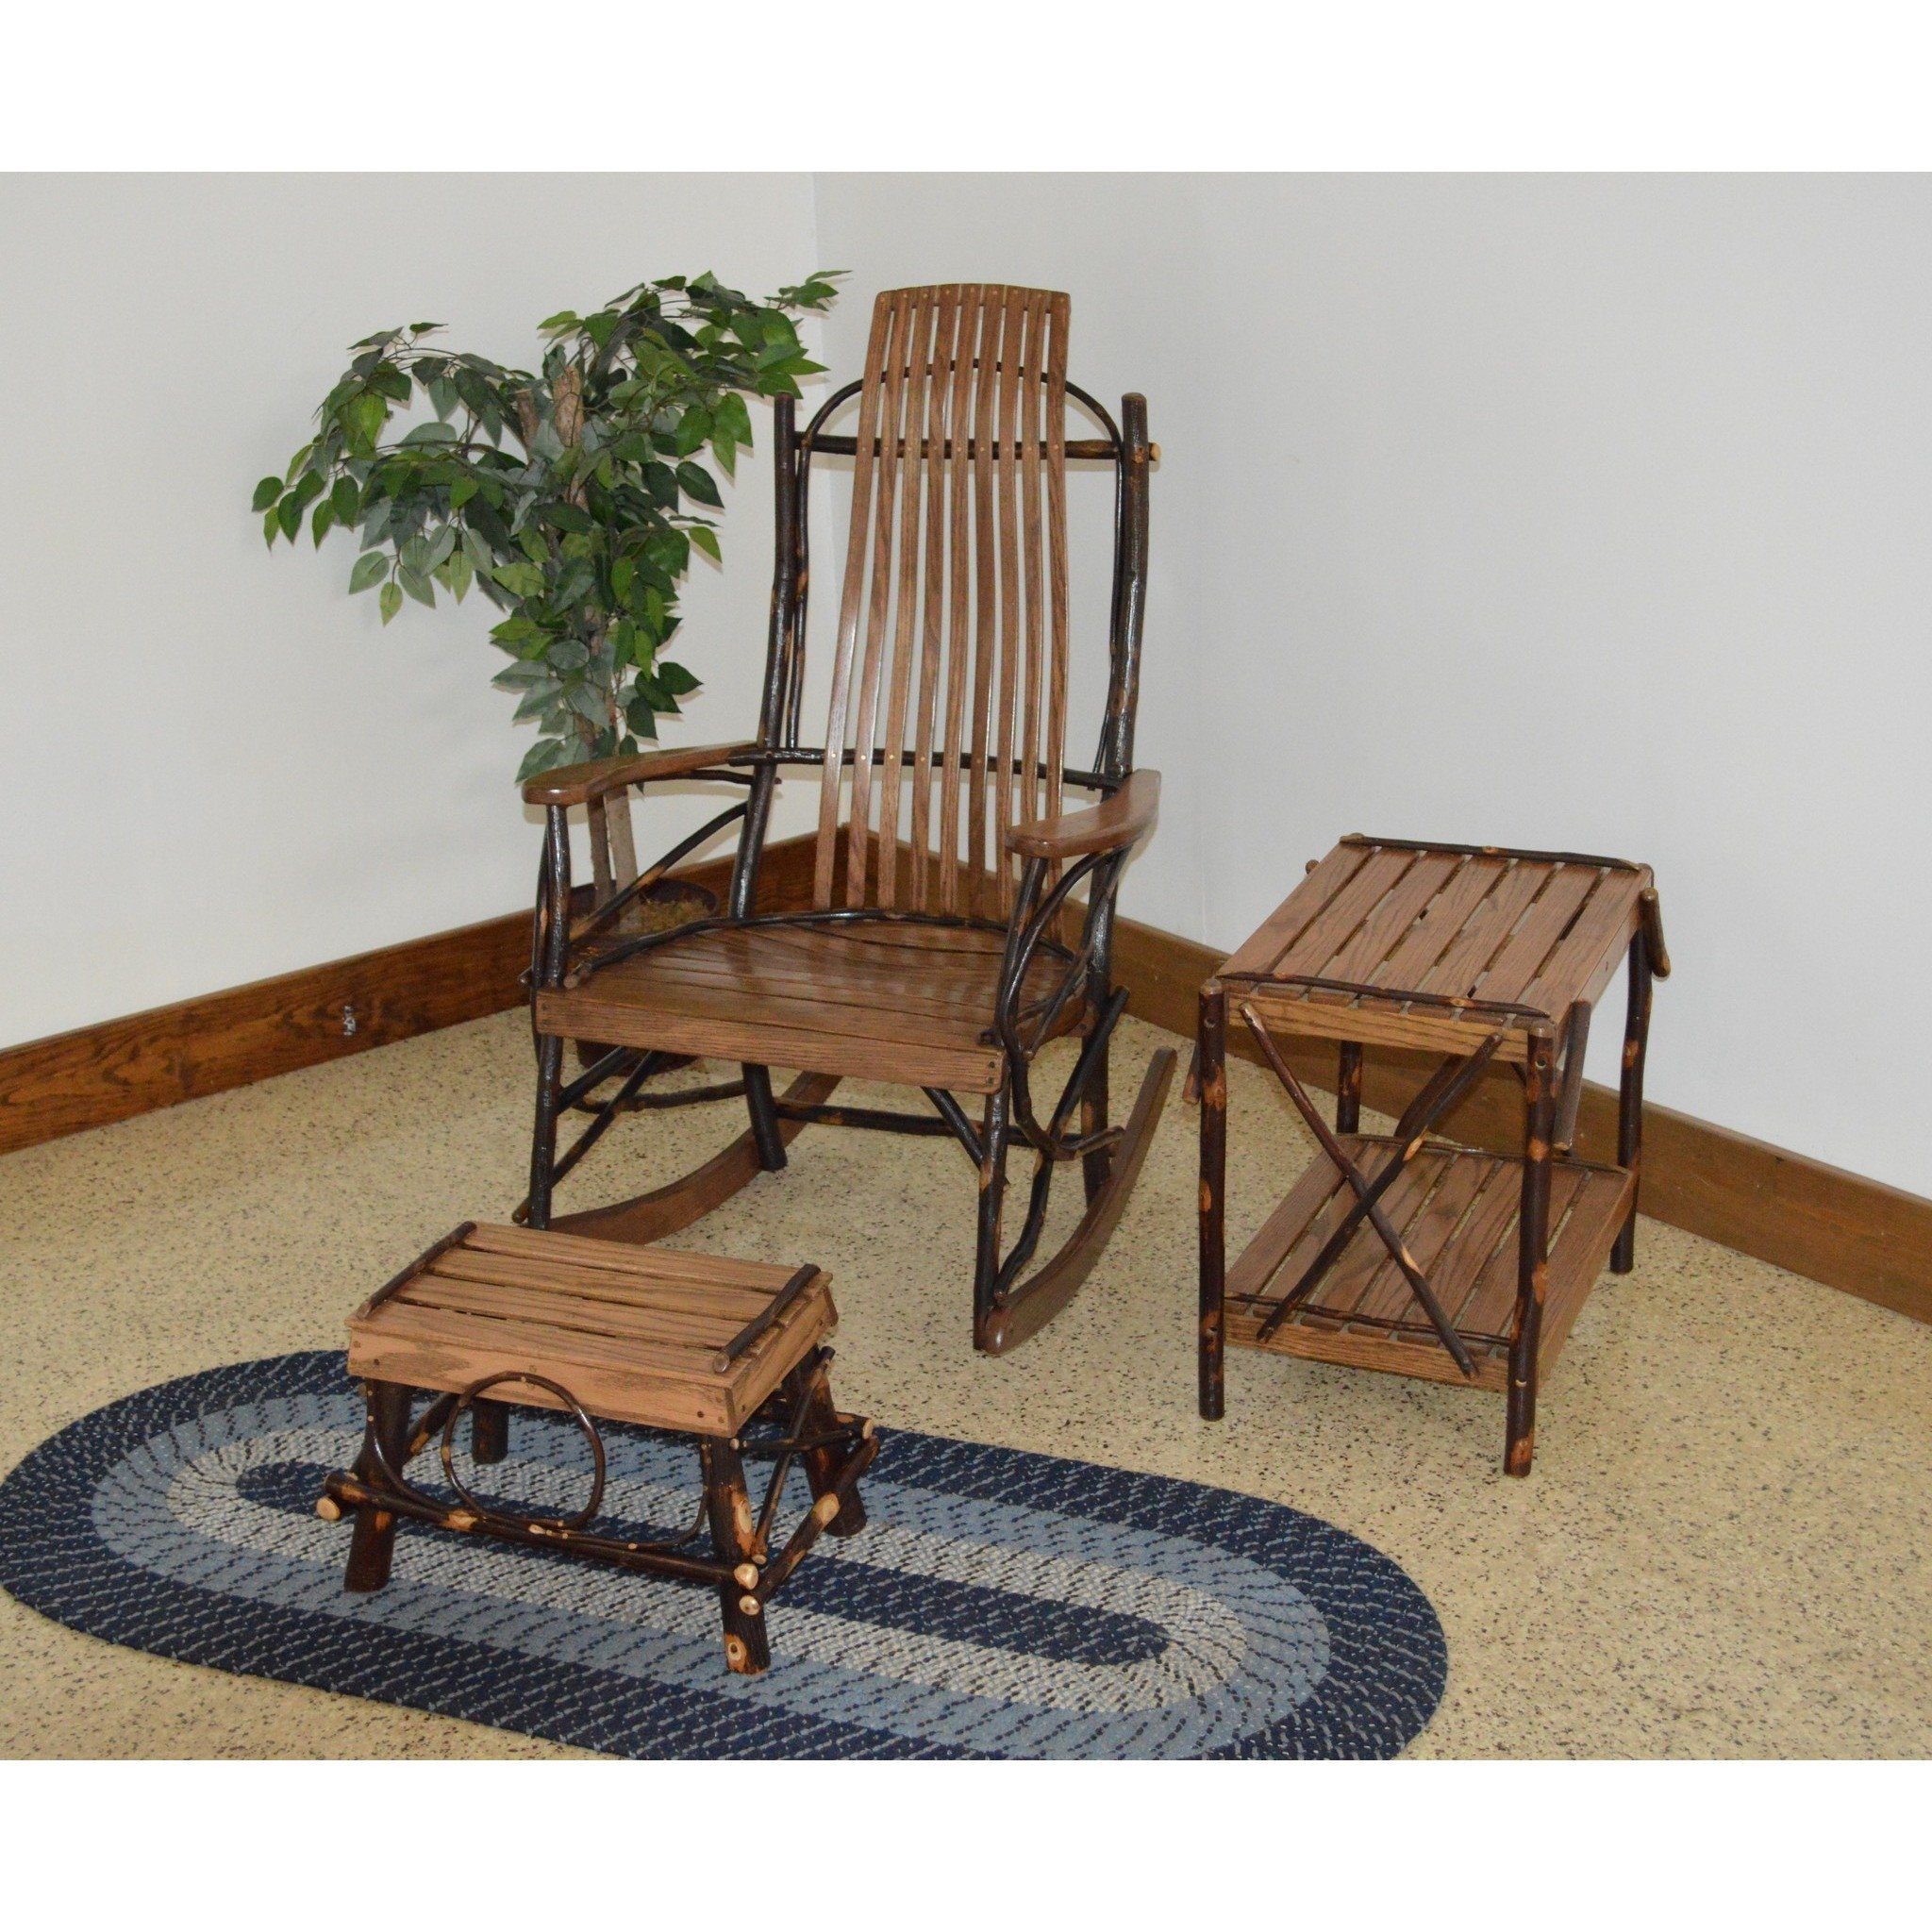 A&L FURNITURE CO. Hickory 9-Slat Rocker Chair w Foot Stool / End Table Set